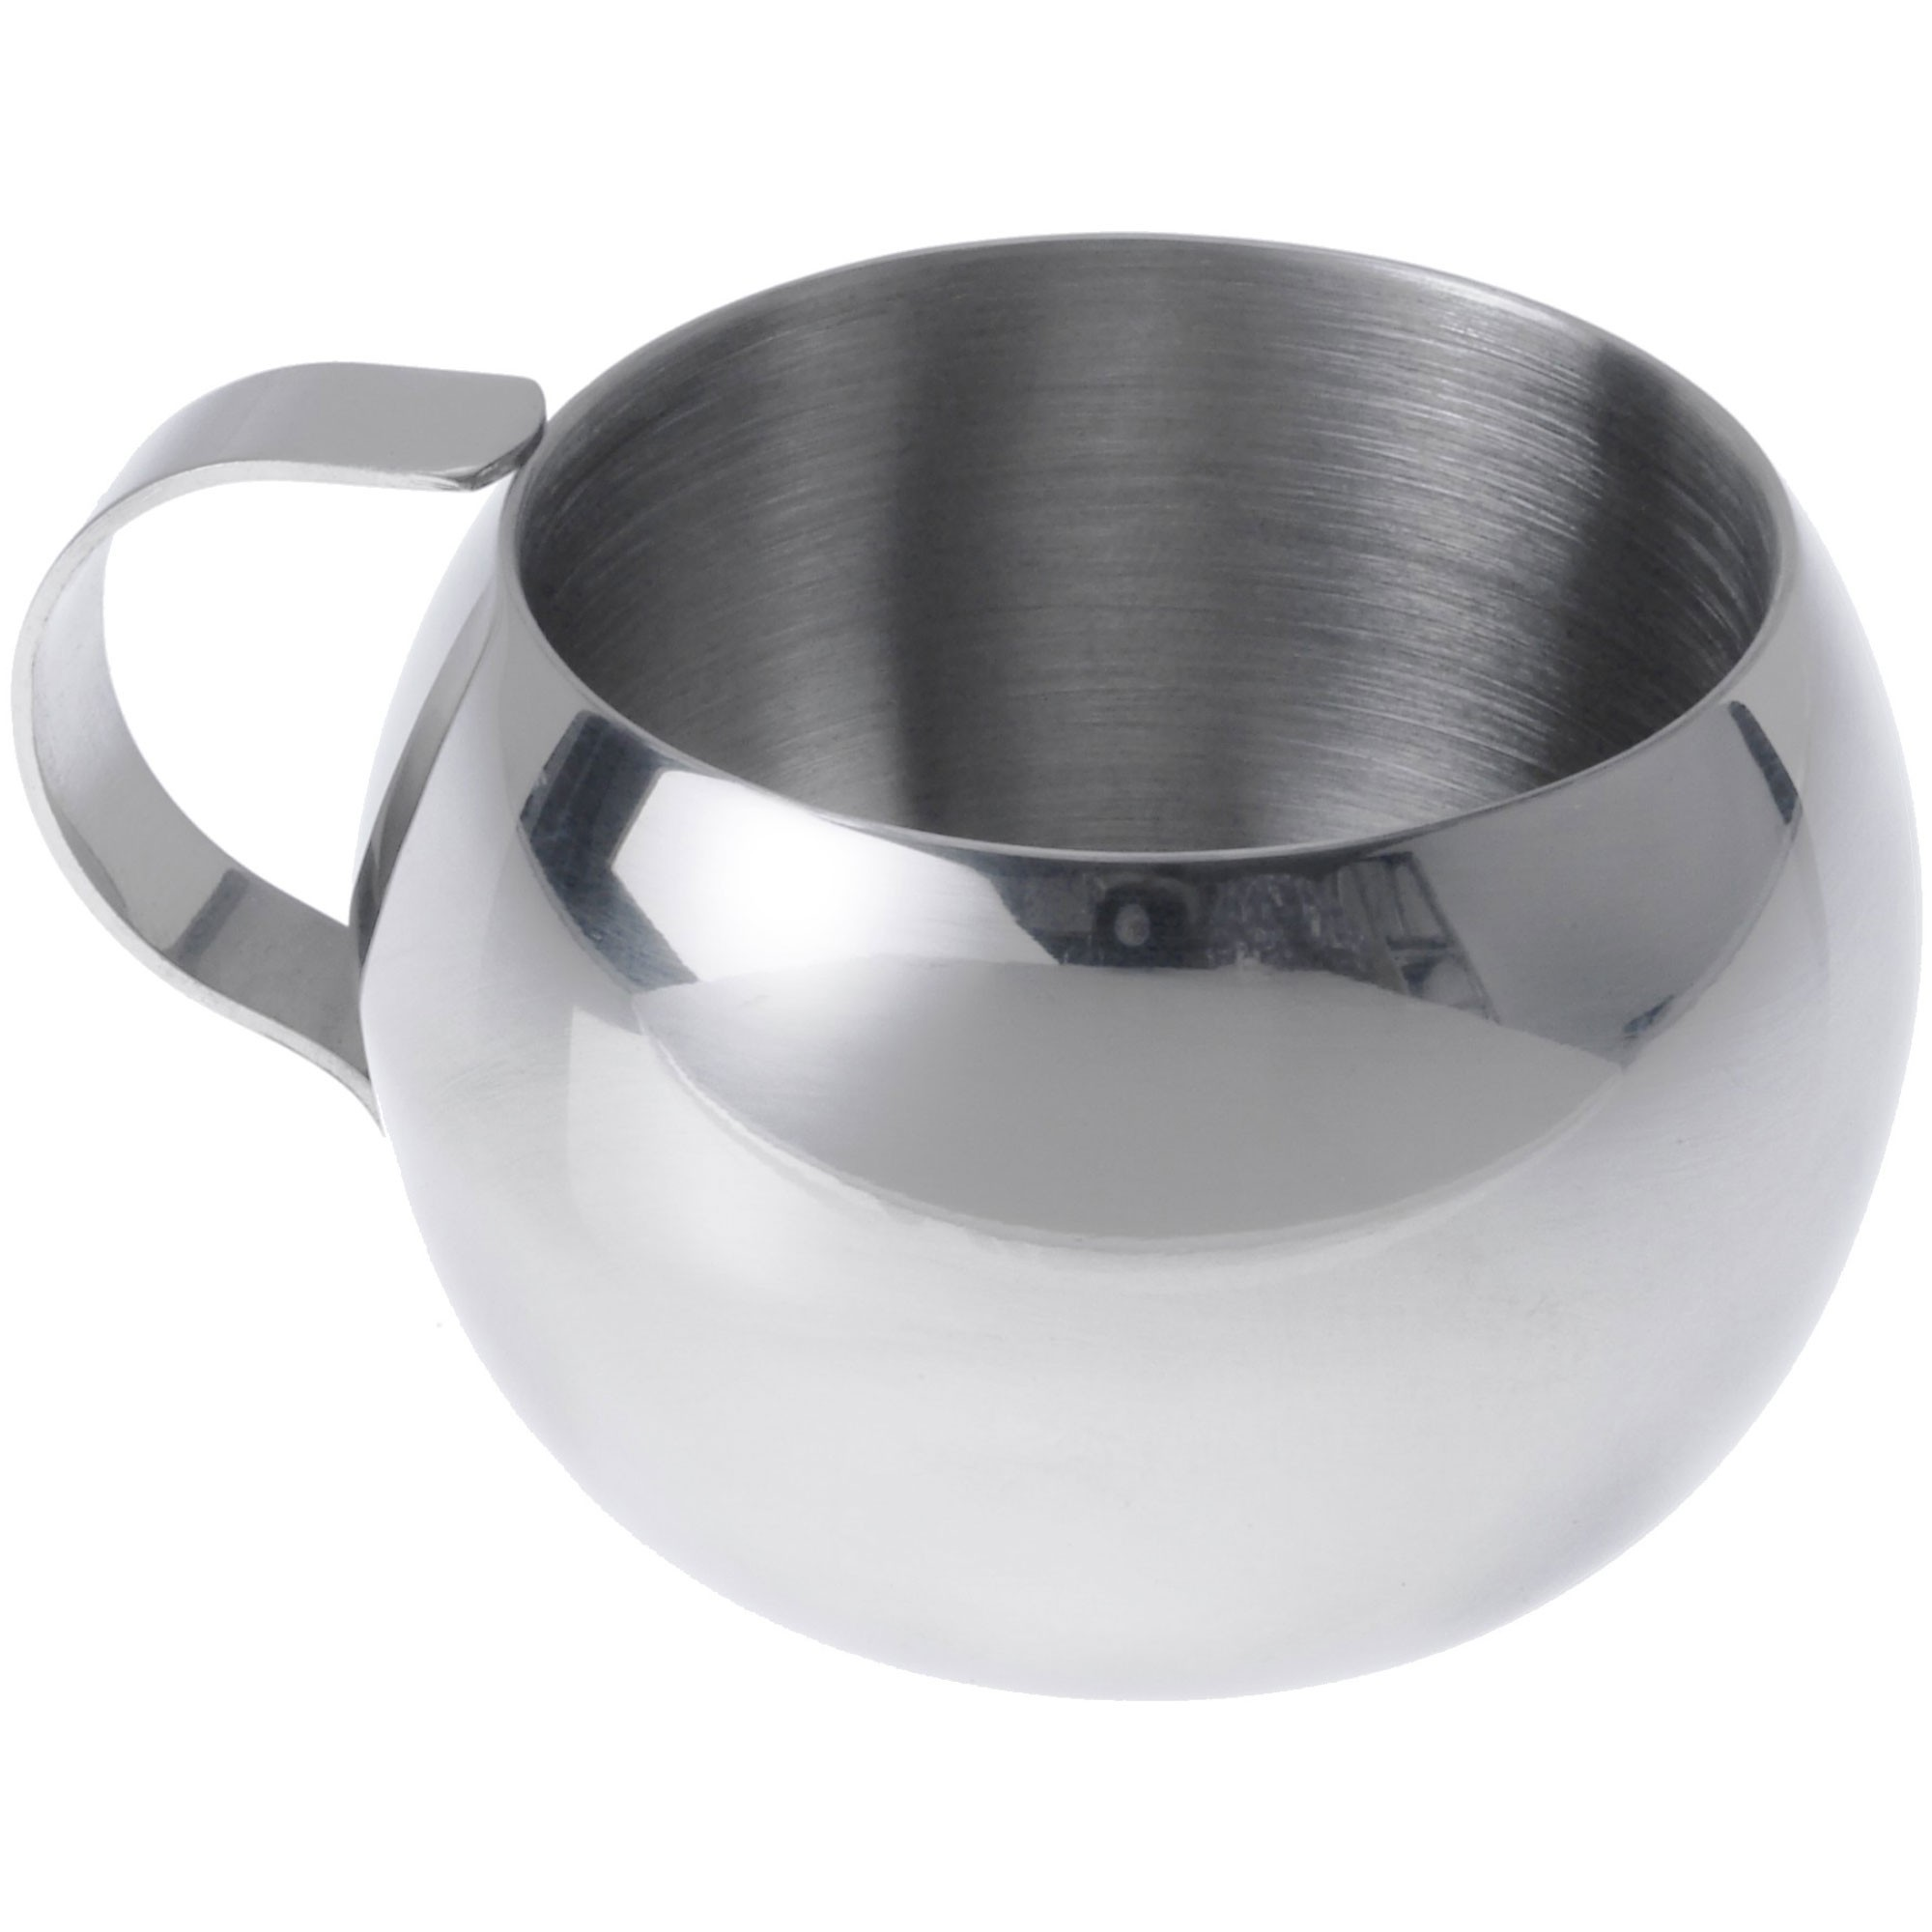 GSI-Glacier-Stainless-Double-Walled-Espresso-Cup